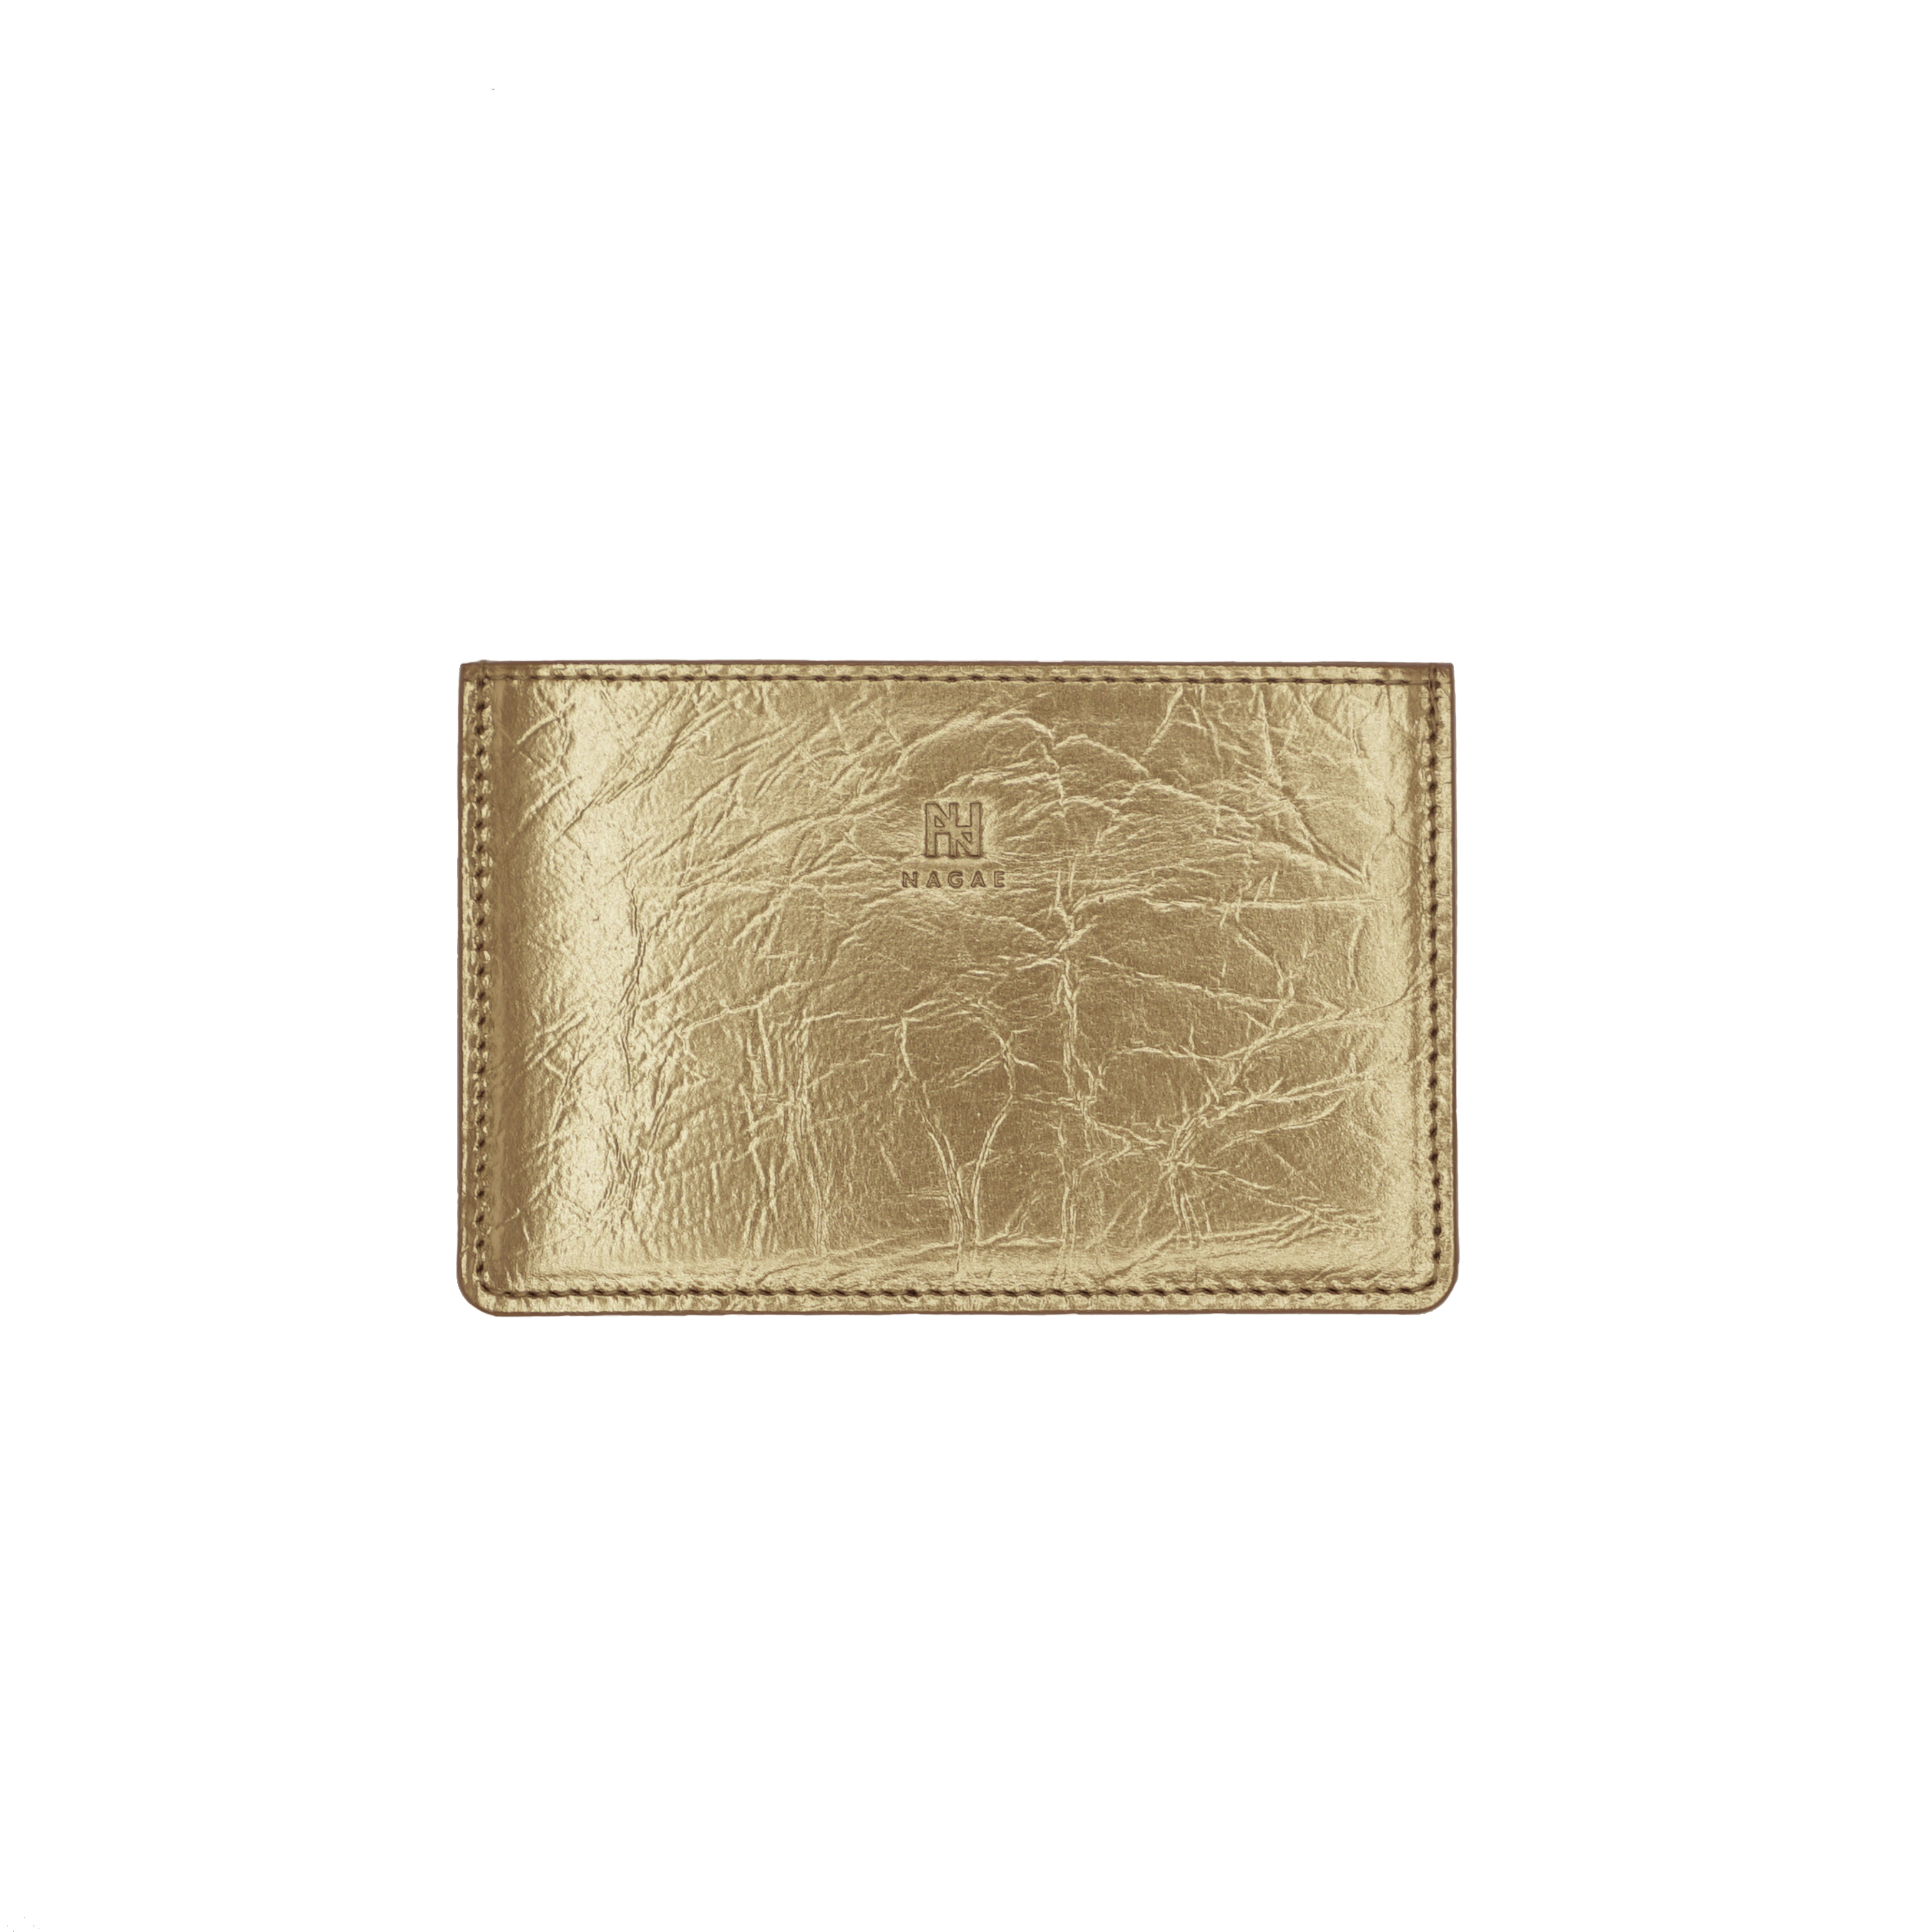 TIN BREATH Business card case single  Antique gold